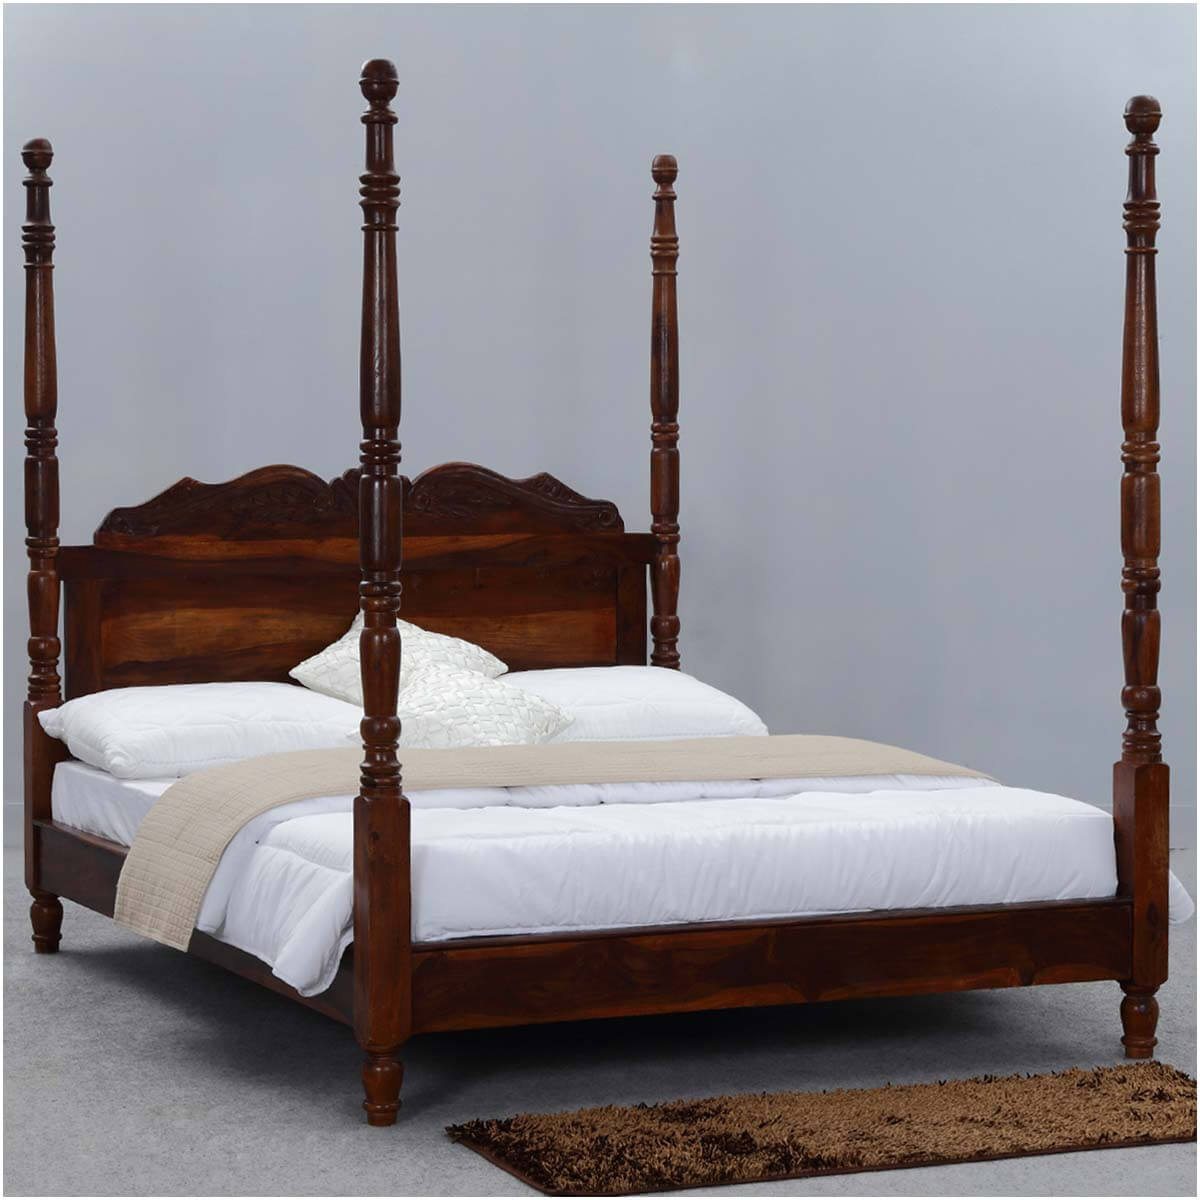 Four Poster Queen Bed Queen Anne Solid Wood Four Poster Platform Bed Frame W